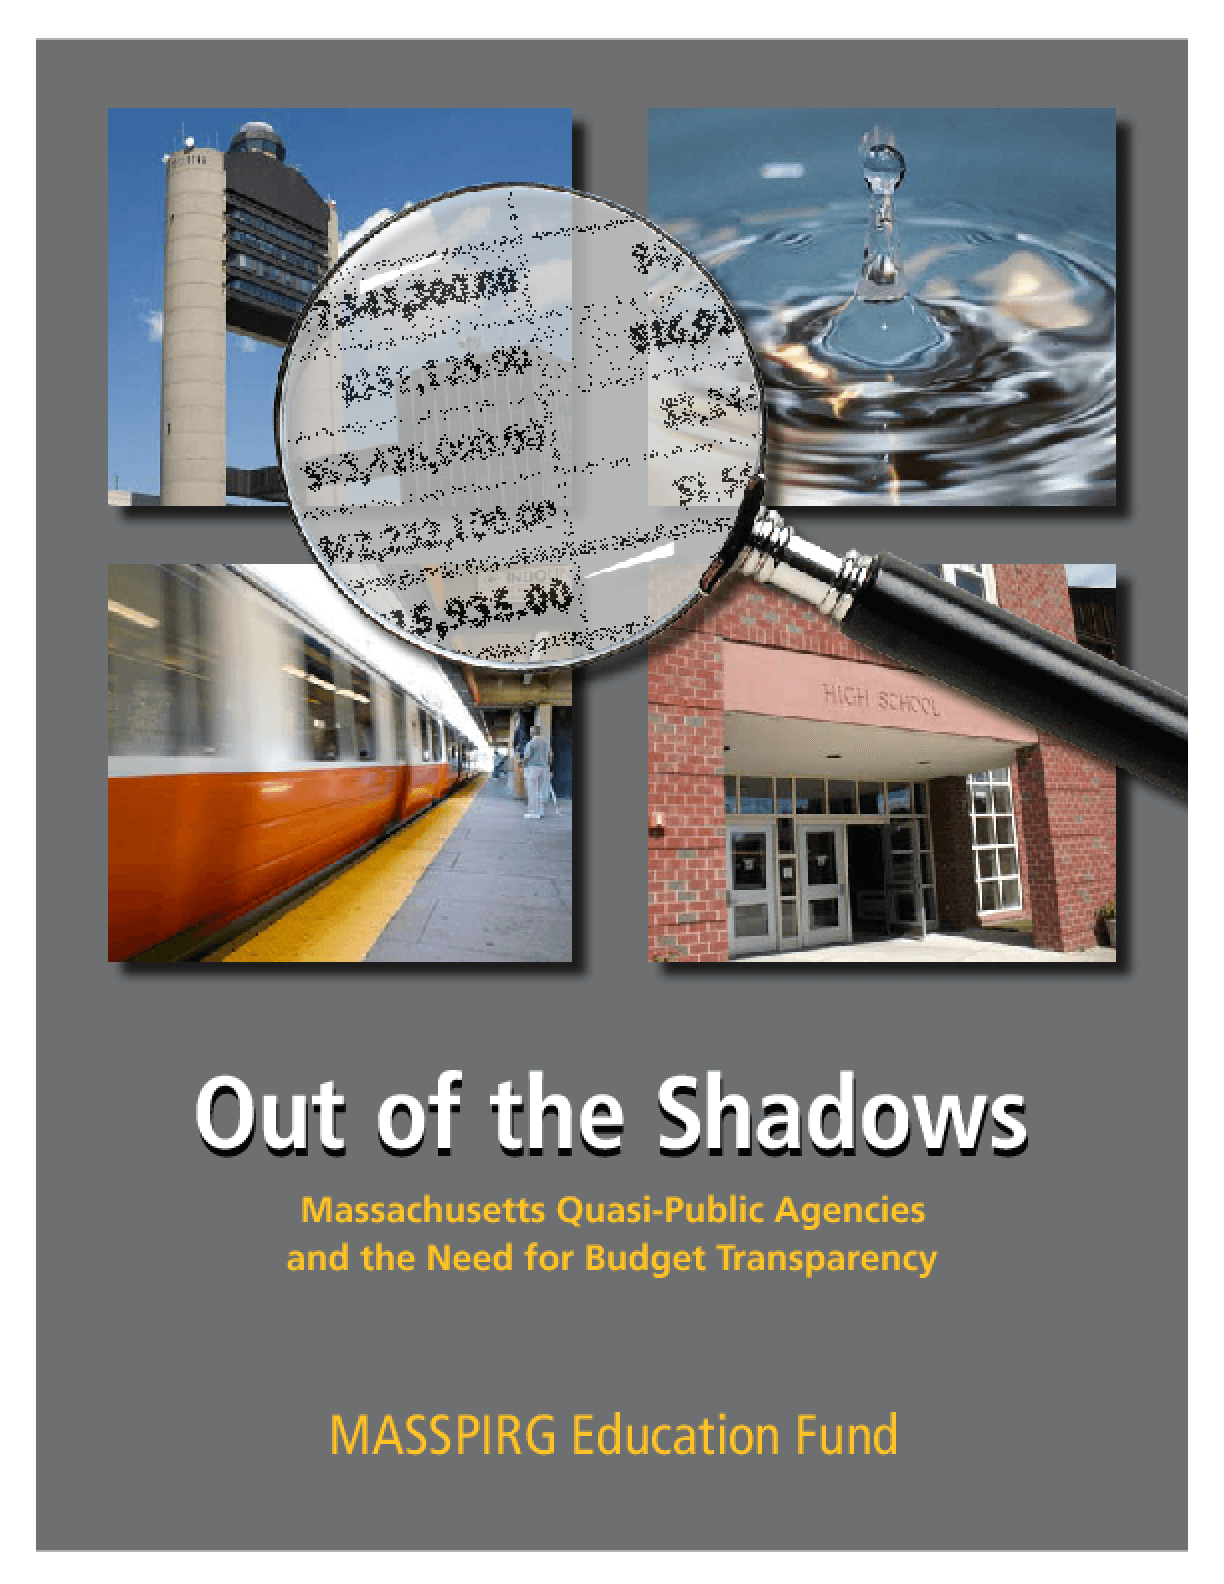 Out of the Shadows: Massachusetts Quasi-Public Agencies and the Need for Budget Transparency